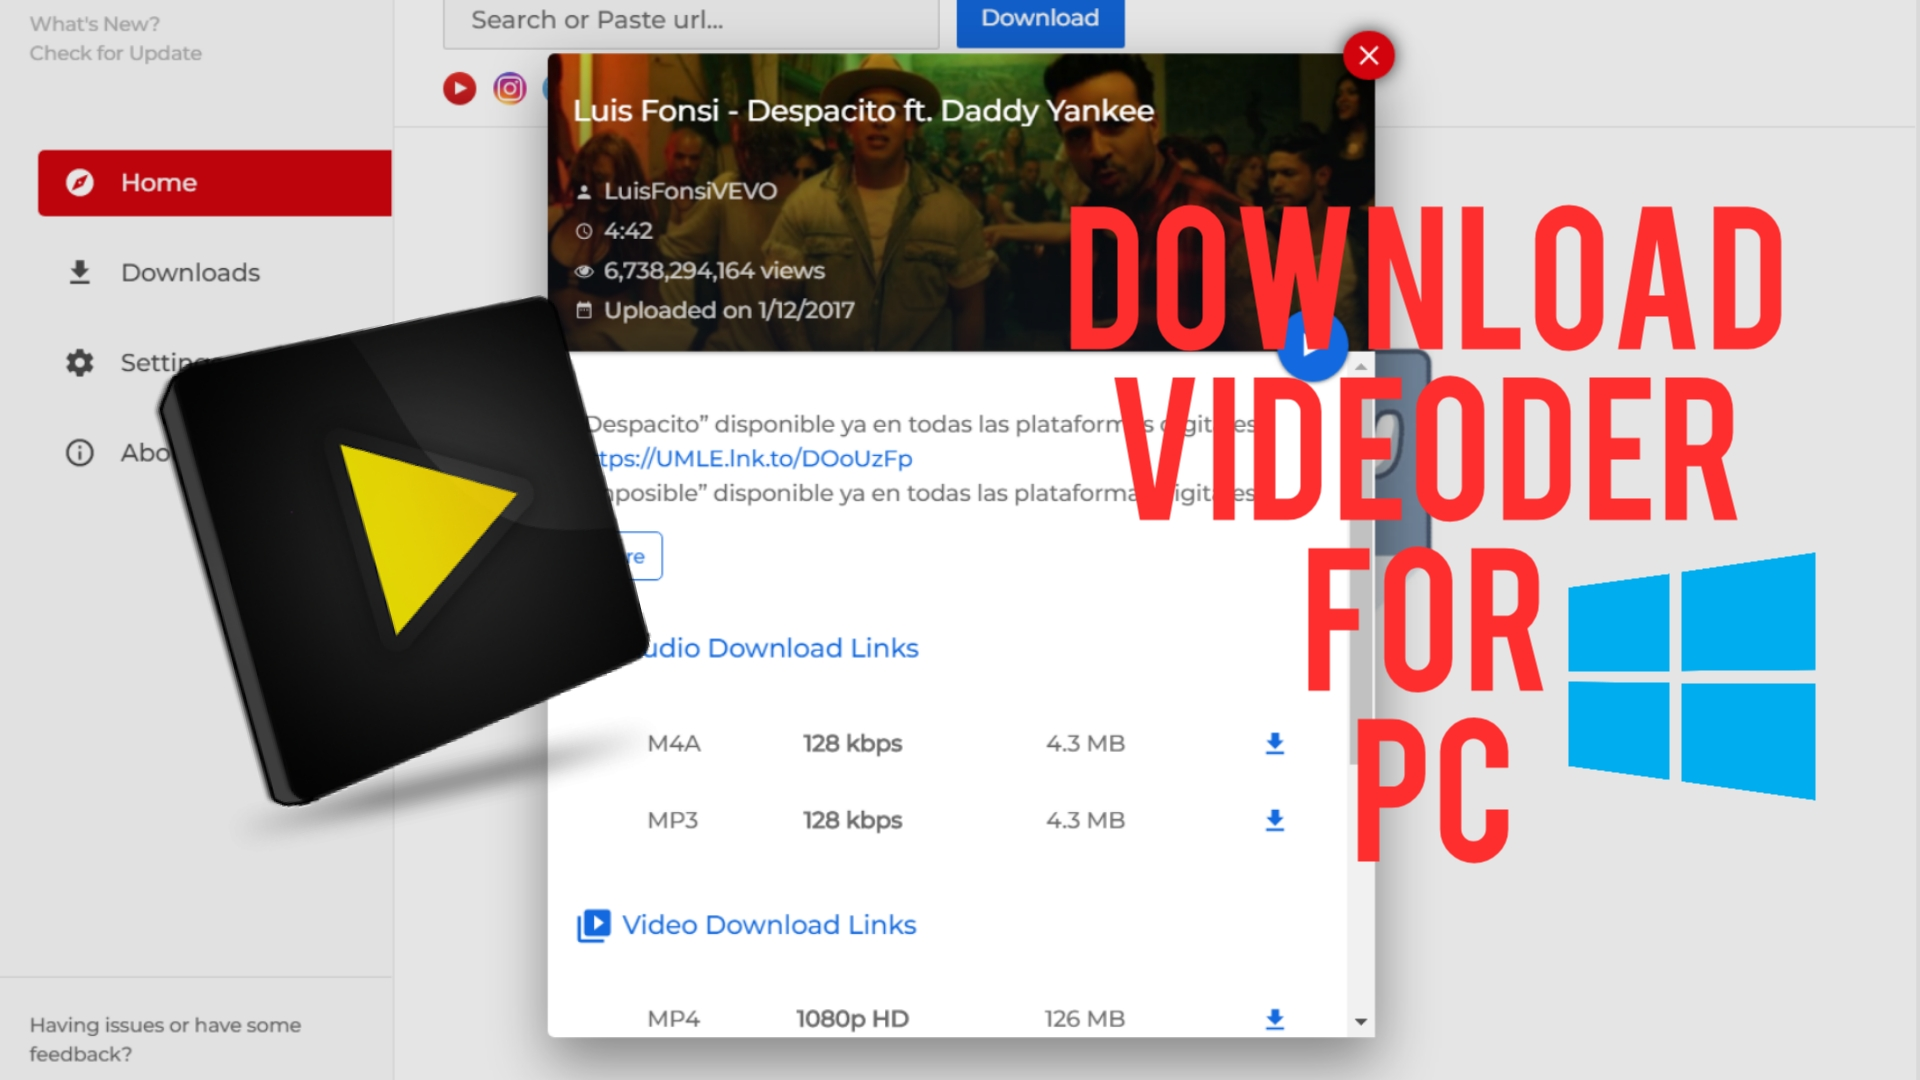 Videoder for PC - Download Latest Version for Windows 10 ...